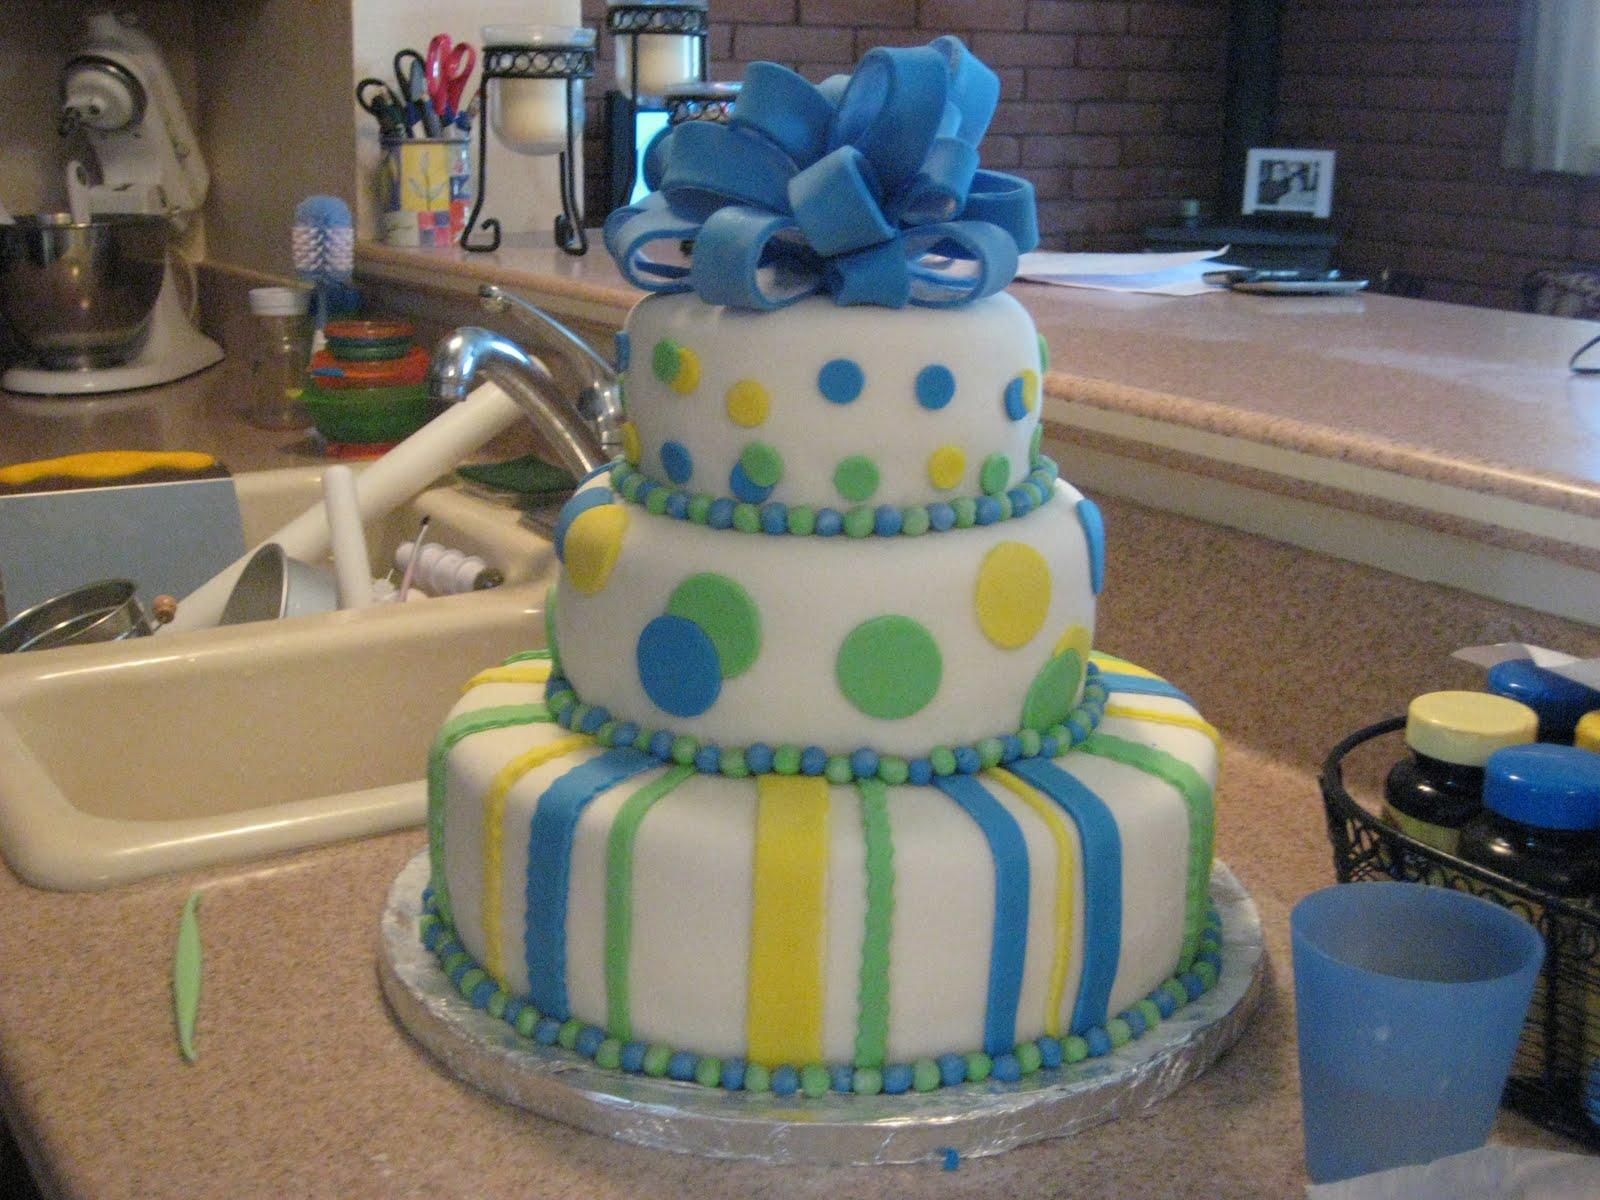 abcd cakes the good the bad and the ugly 3 tier baby shower cake